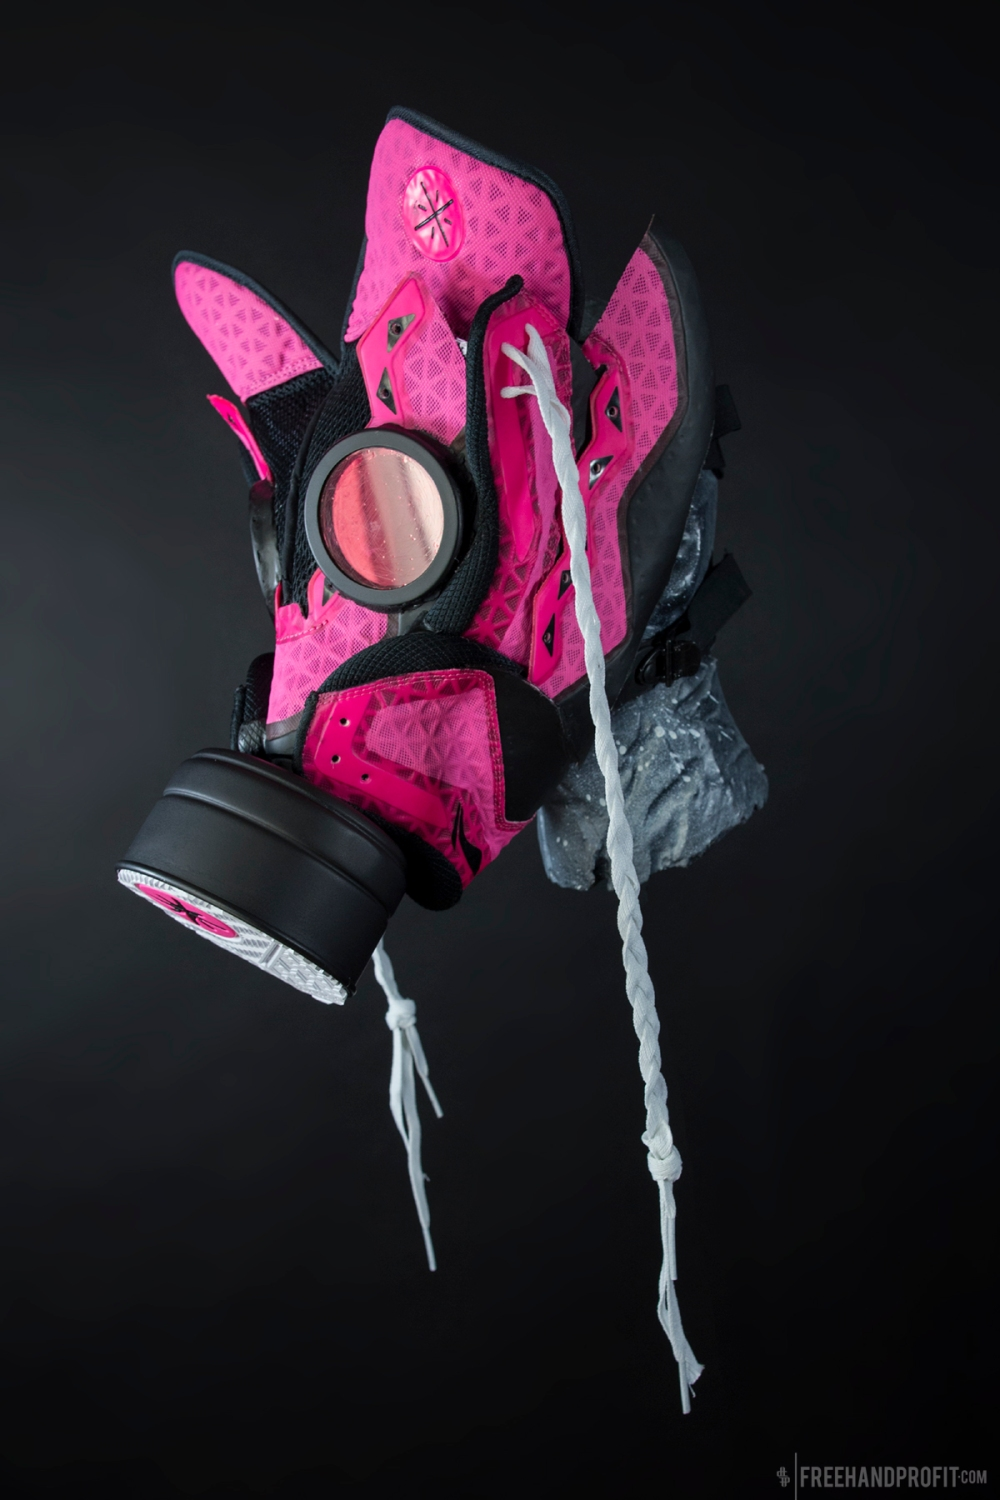 Miami Rose WoW3 Gas Mask by Freehand Profit